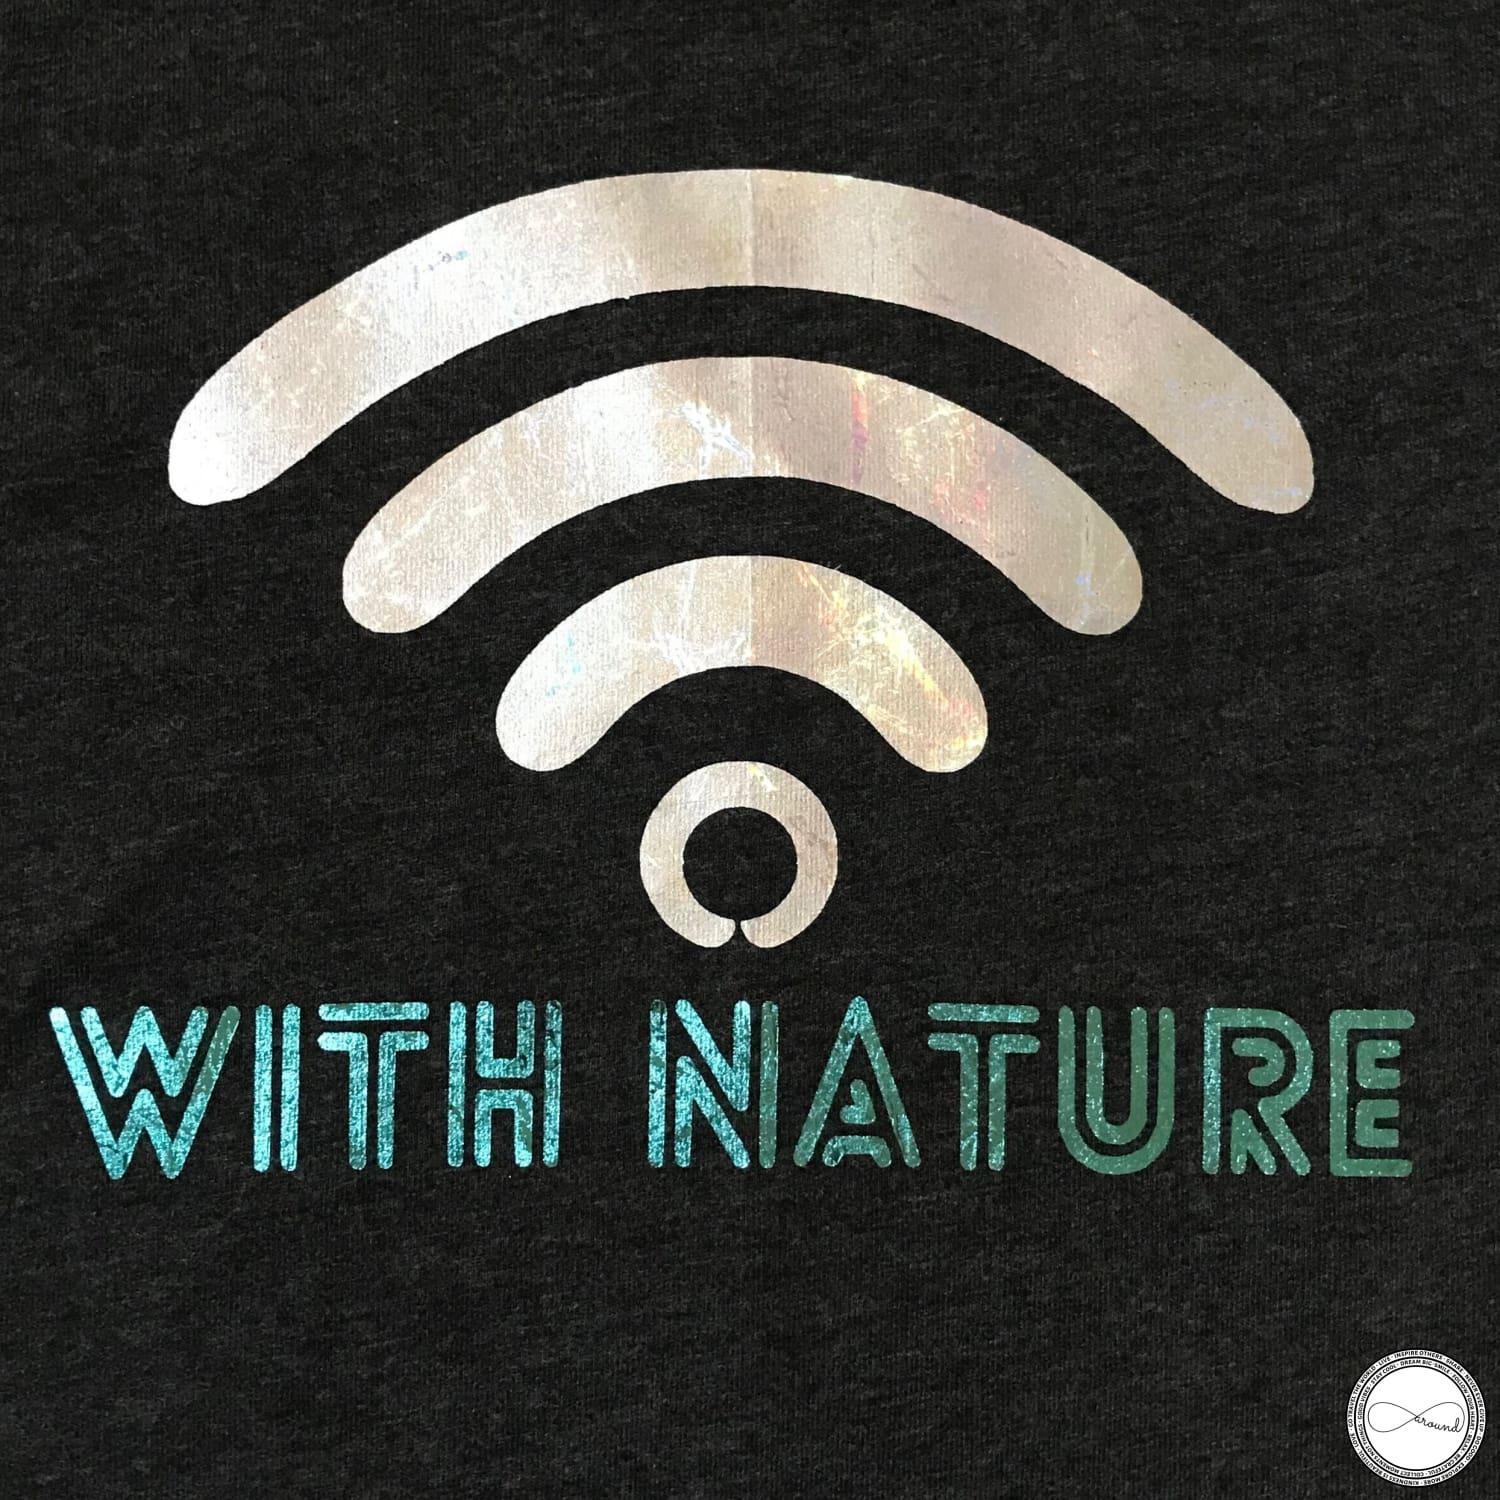 Around Eco fair trade and ecofriendly dark gray graphic tee with the words Connected With Nature Travel tshirt